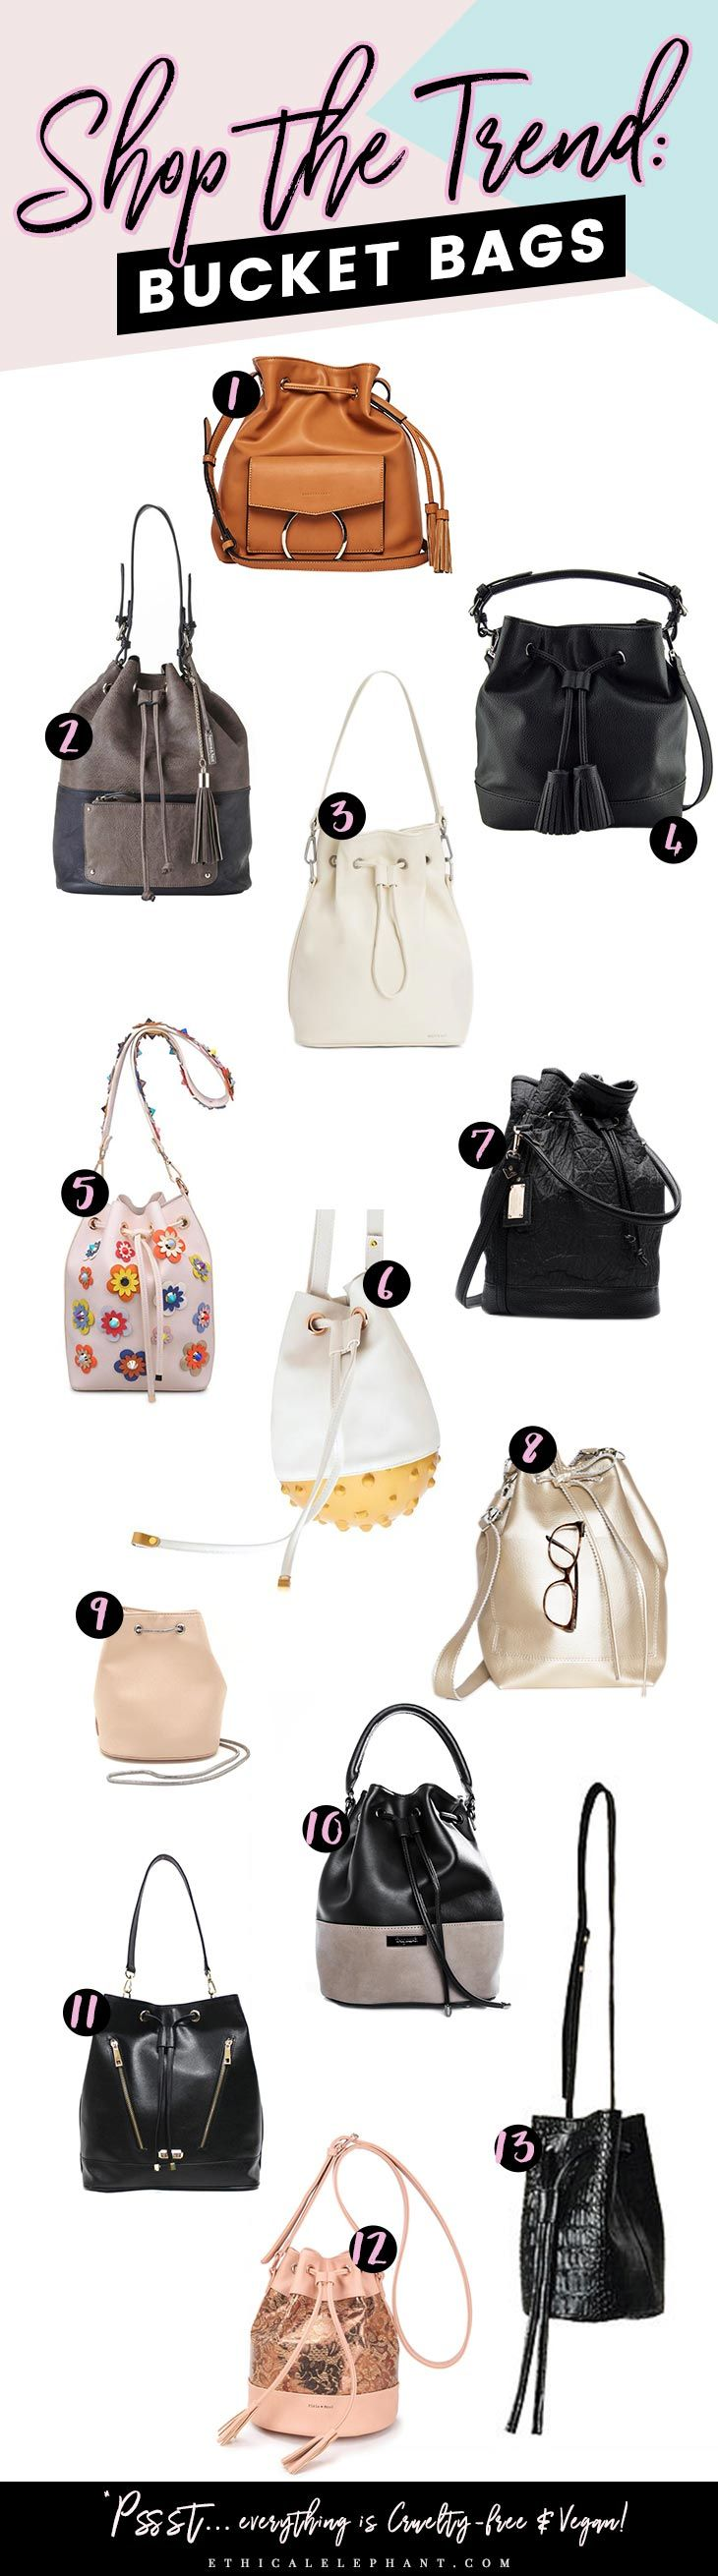 Shop the Trend in cruelty-free & vegan fashion. This week, we talk about vegan bucket bags to staying on trend!